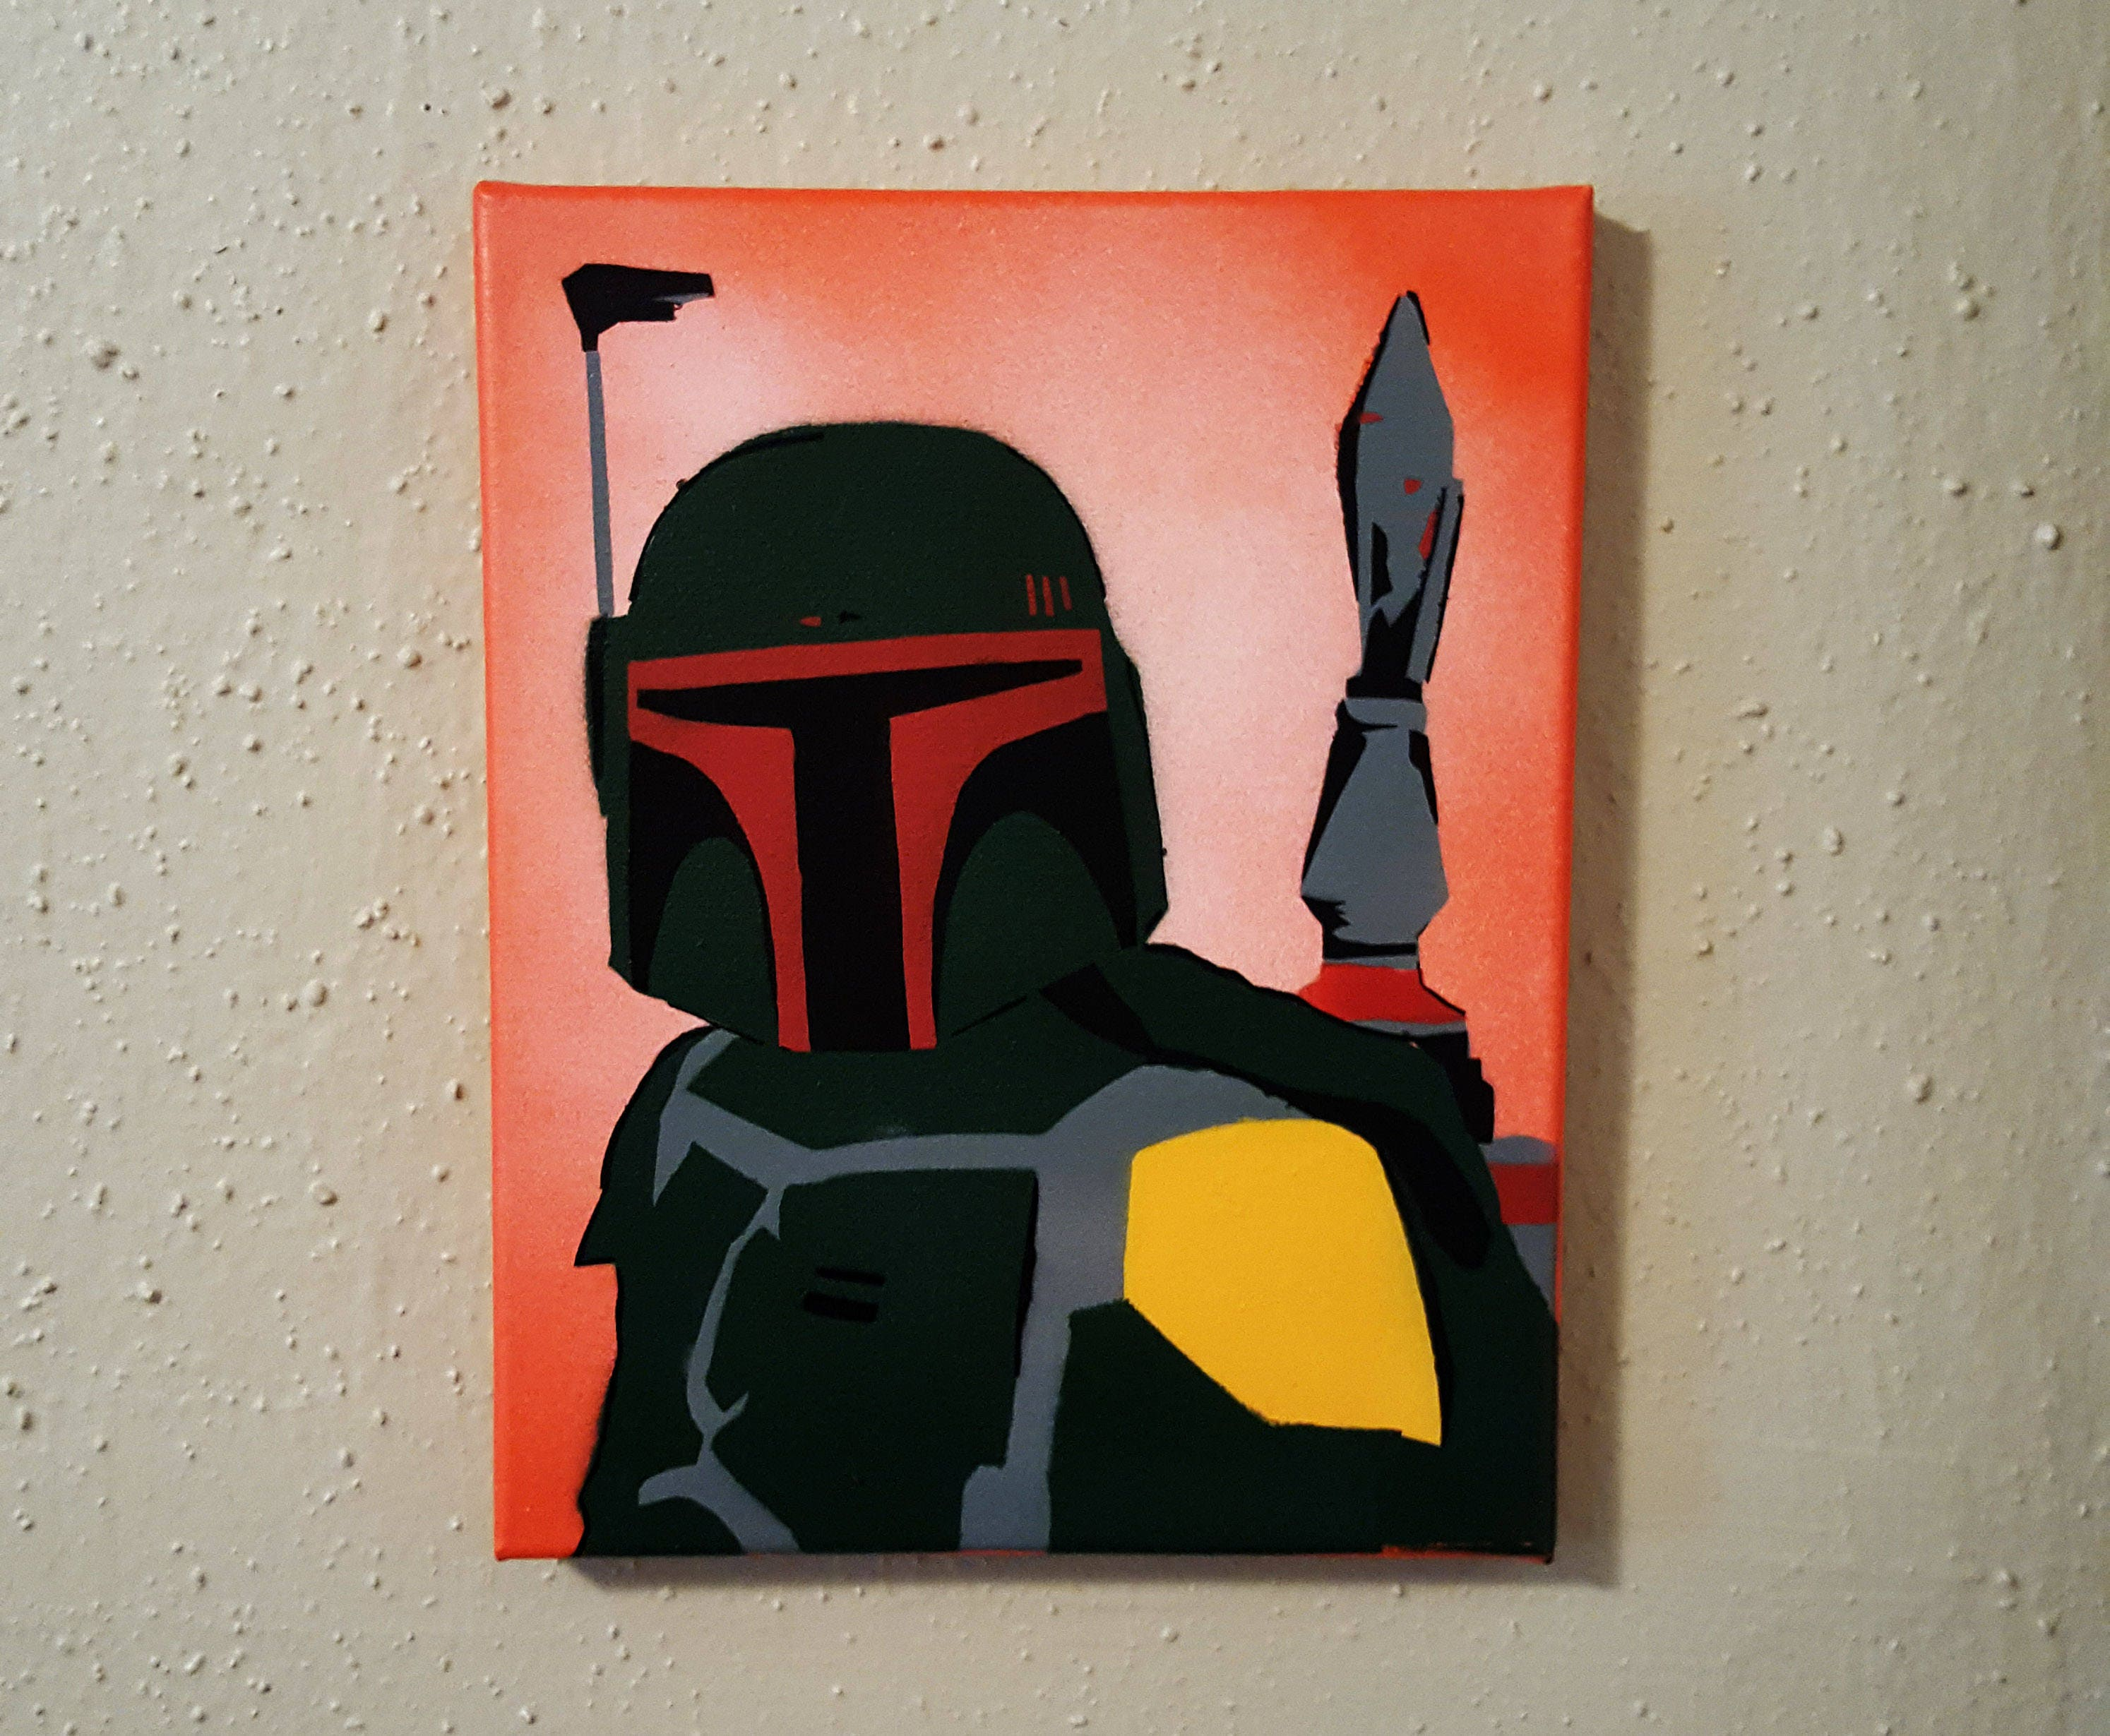 Boba fett star wars canvas 8x10 star wars fan art 8x10 darkside